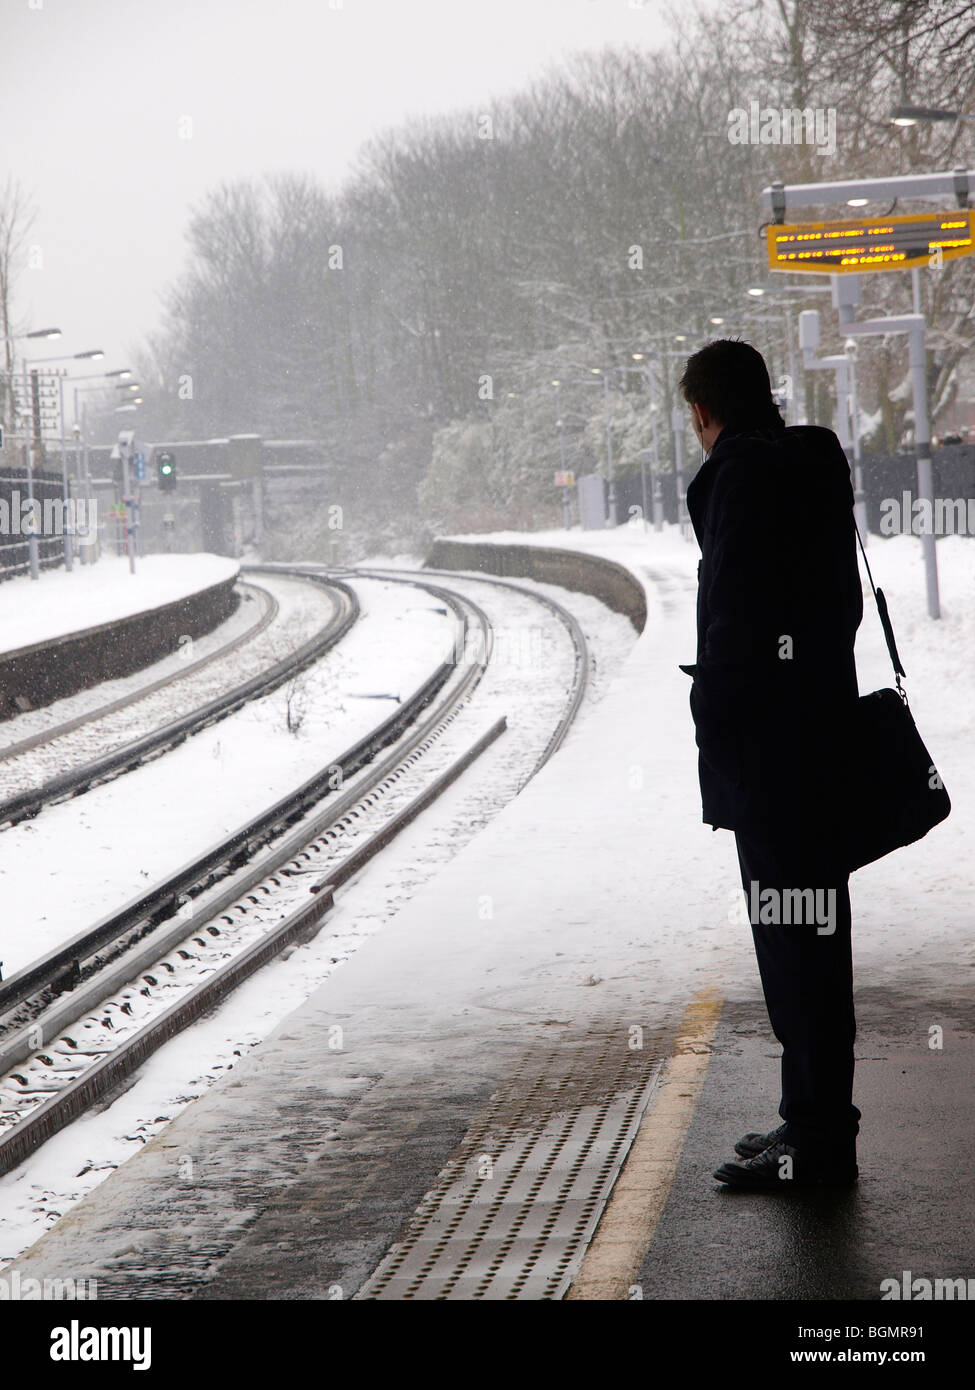 Commuter waiting for a  train delayed by snow at a suburban railway station outside London. - Stock Image